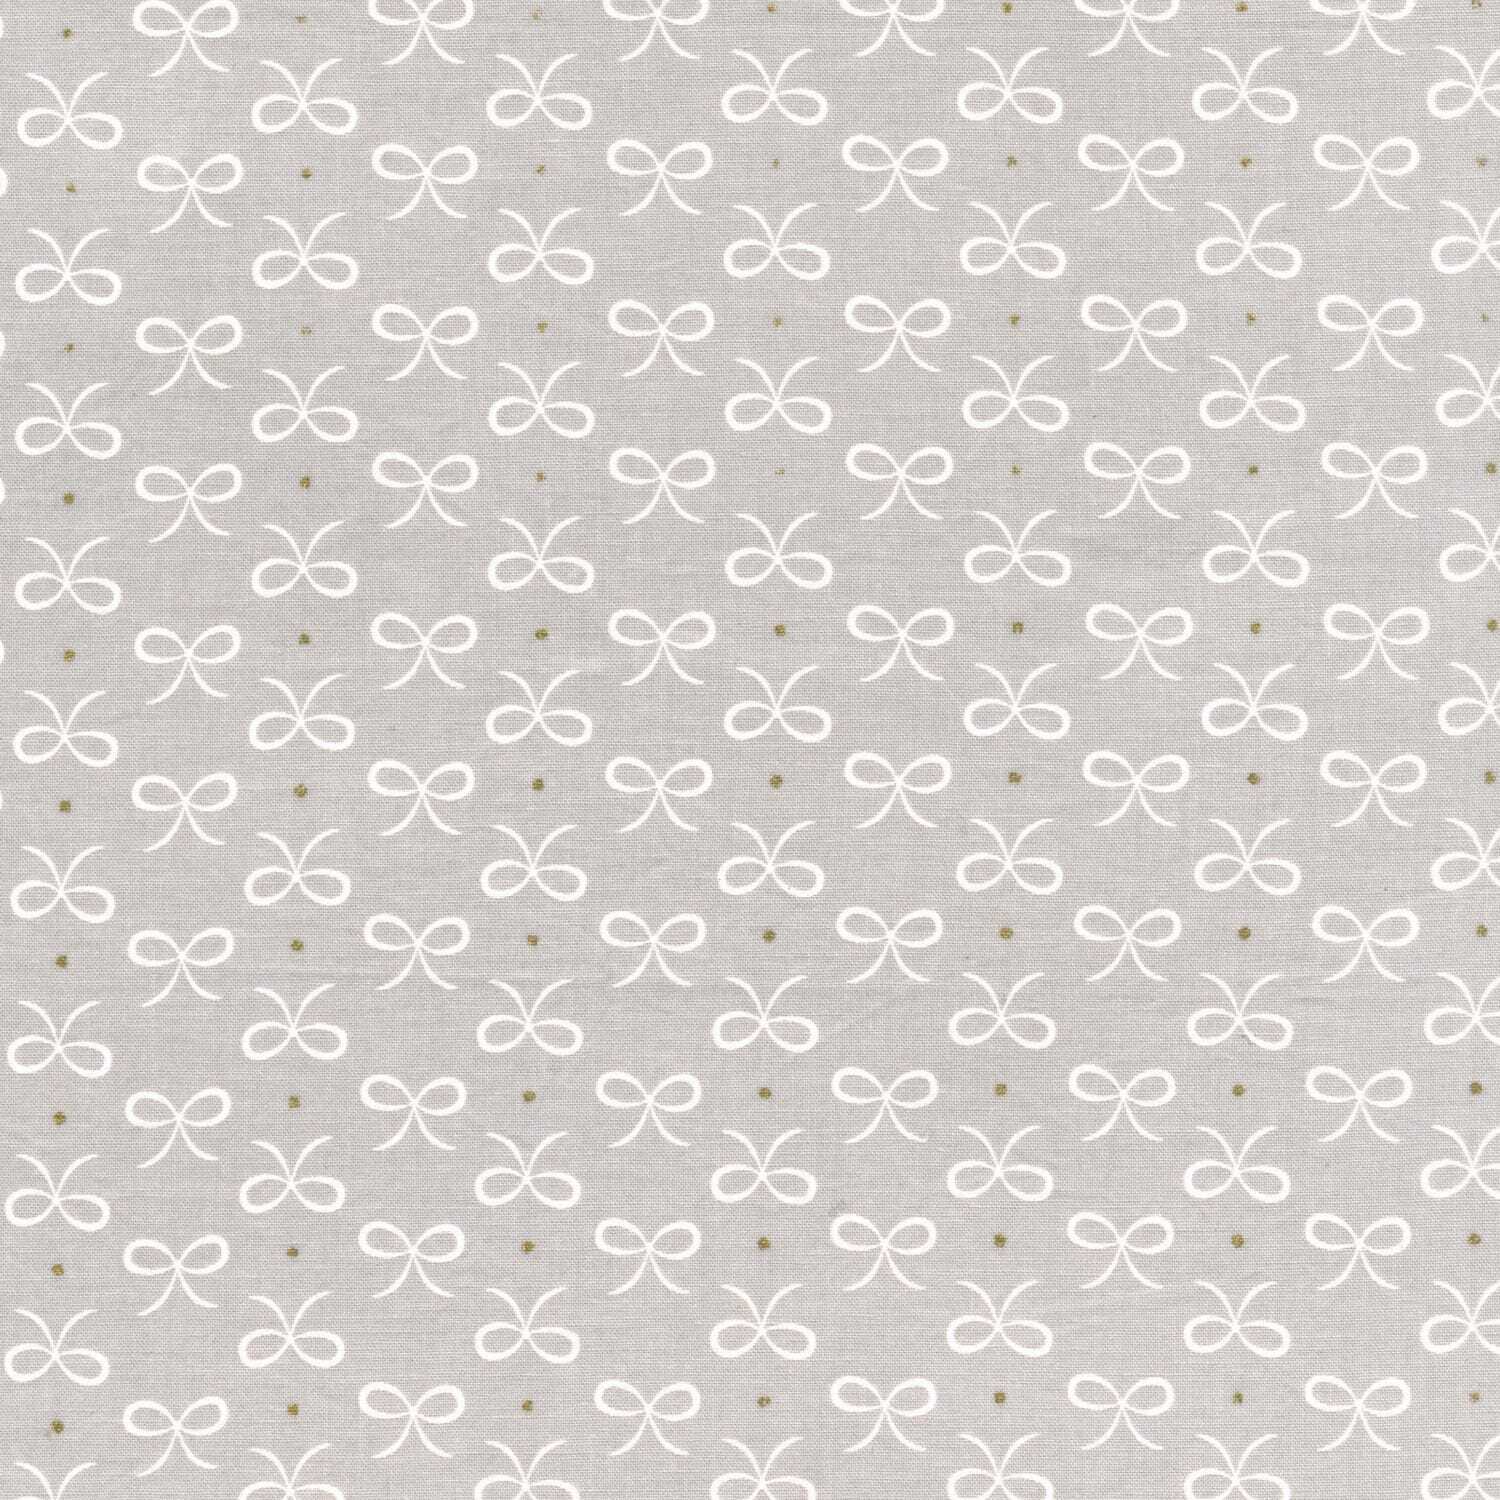 Michael Miller Wee Sparkle Bitty Bows Cloud With Metallic Cotton Fabric